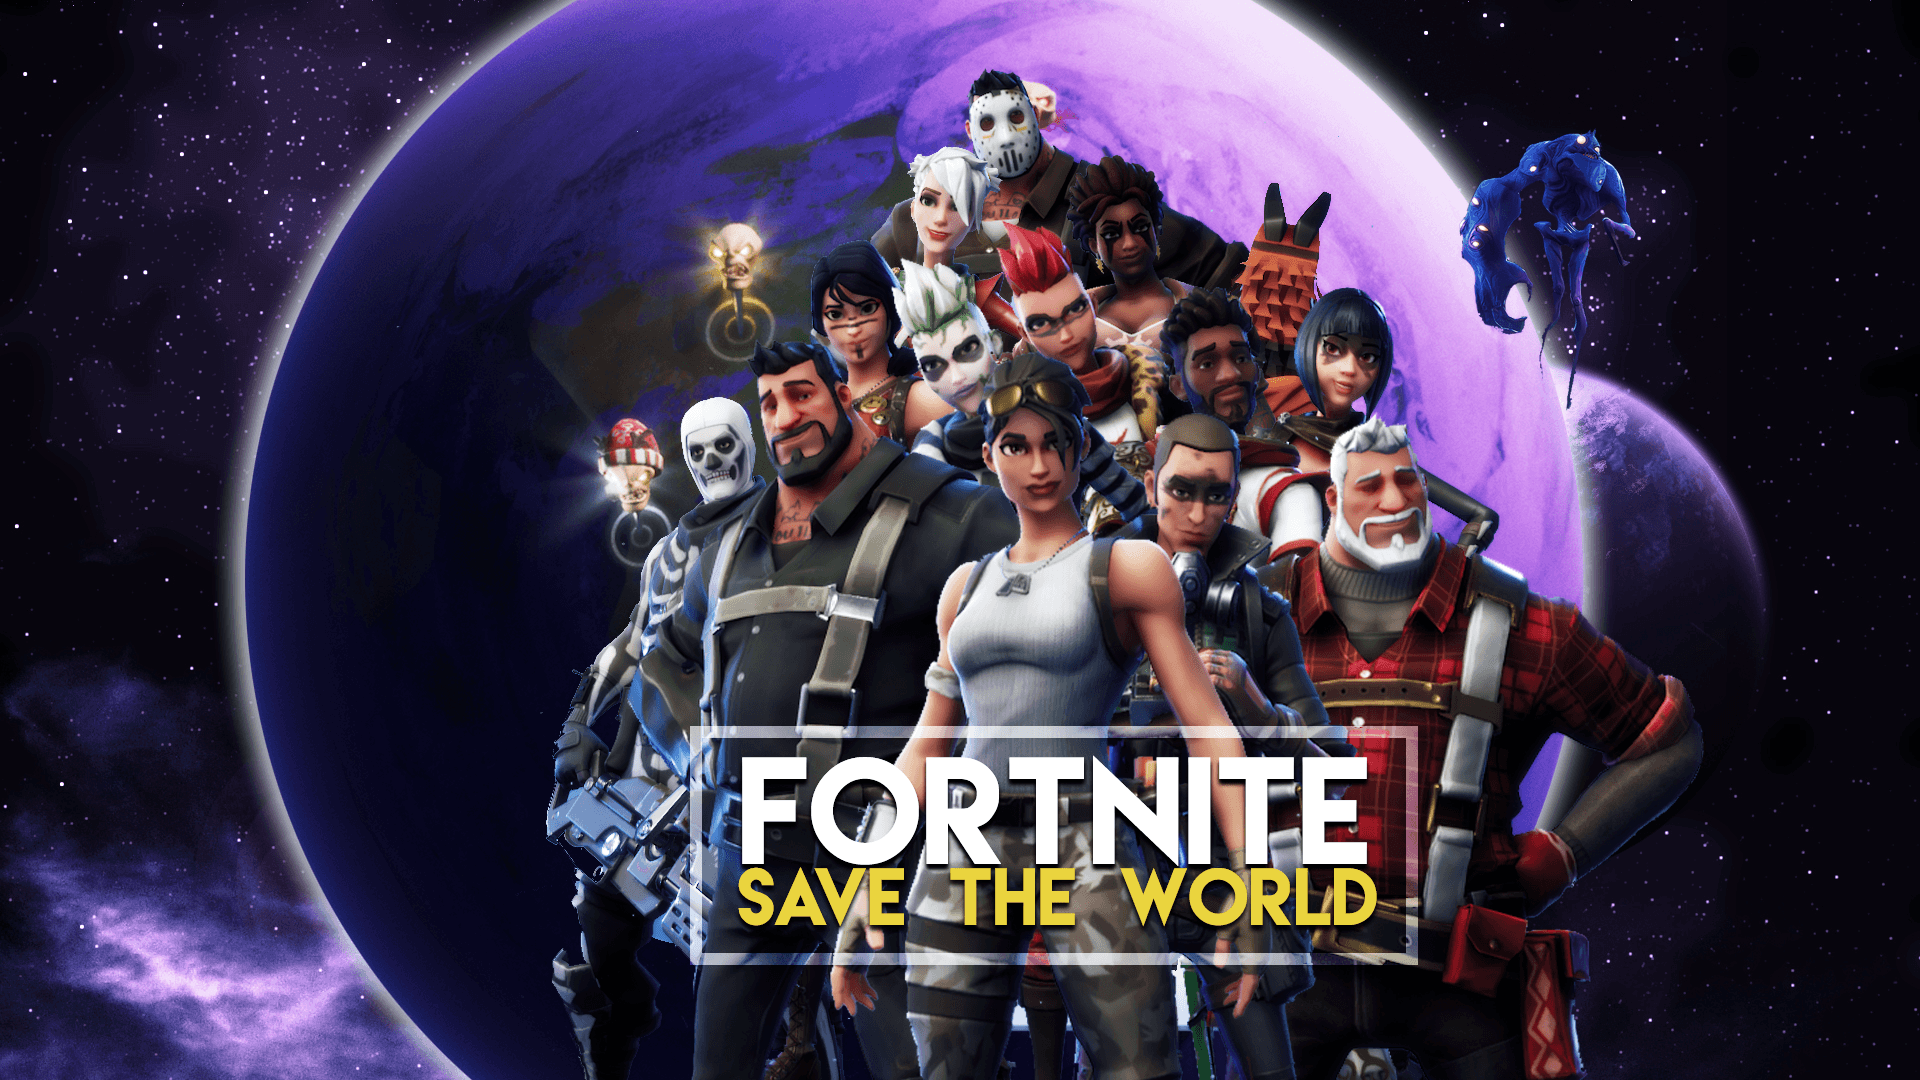 Fortnite HD Wallpapers 25 - 1920 X 1080 | stmed.net